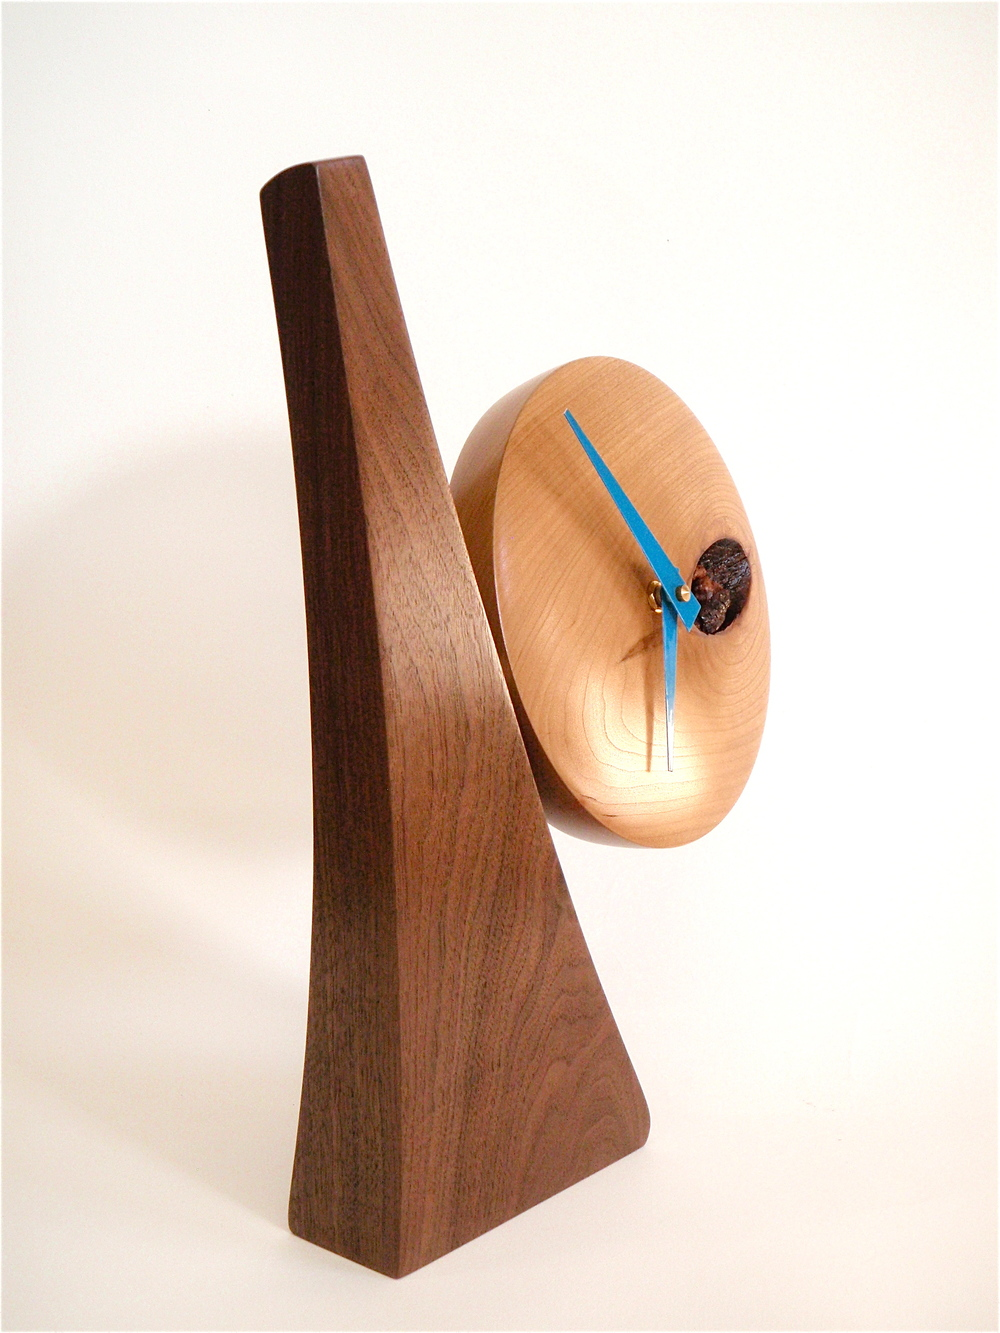 Adjustable desk clock 01